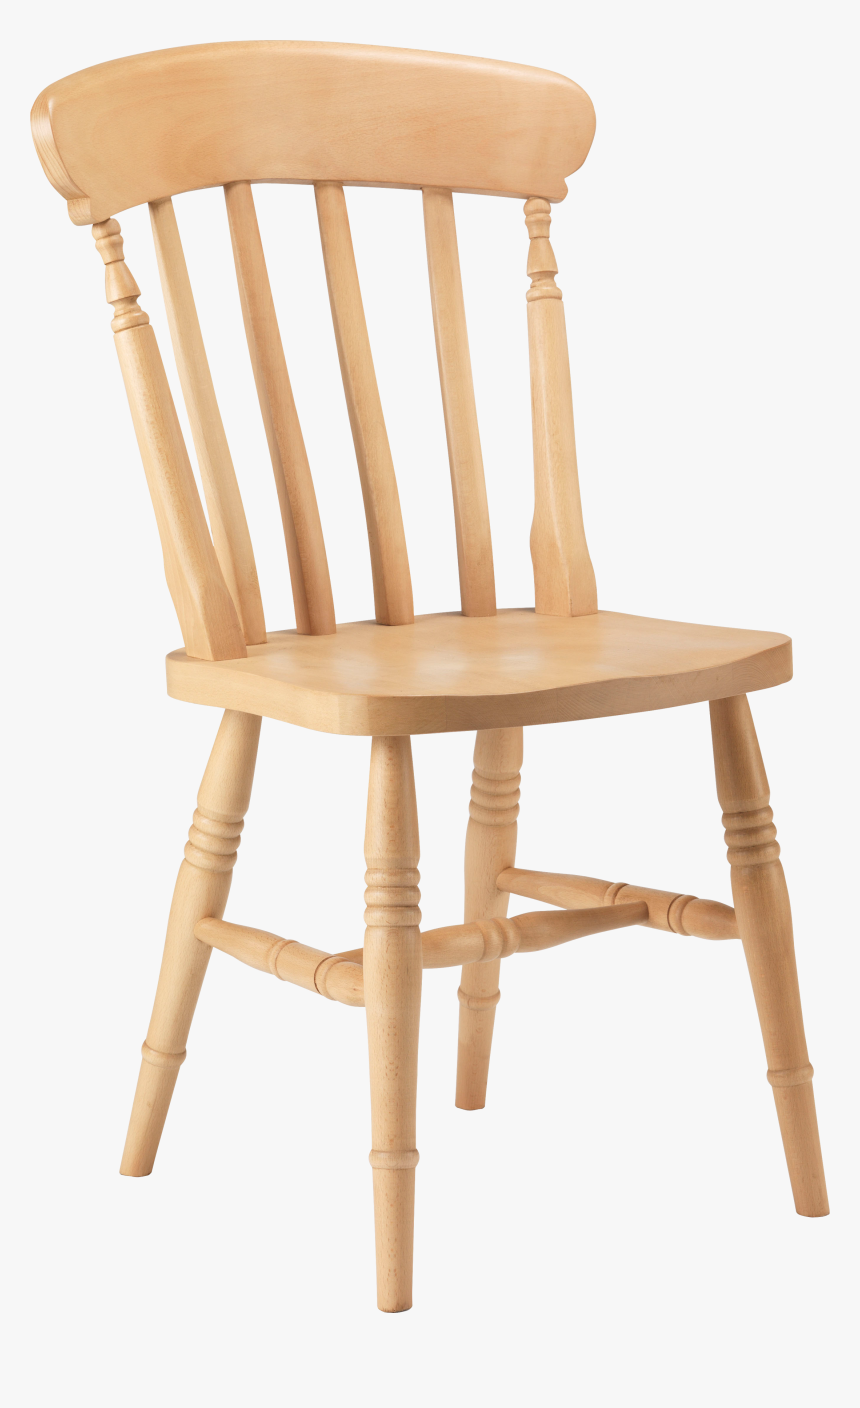 Antique Style Polished Chair Png Image Windsor Slat Back Chairs Transparent Png Is Free Transparent Png Image To E In 2021 Chair Kitchen Chairs Fantastic Furniture